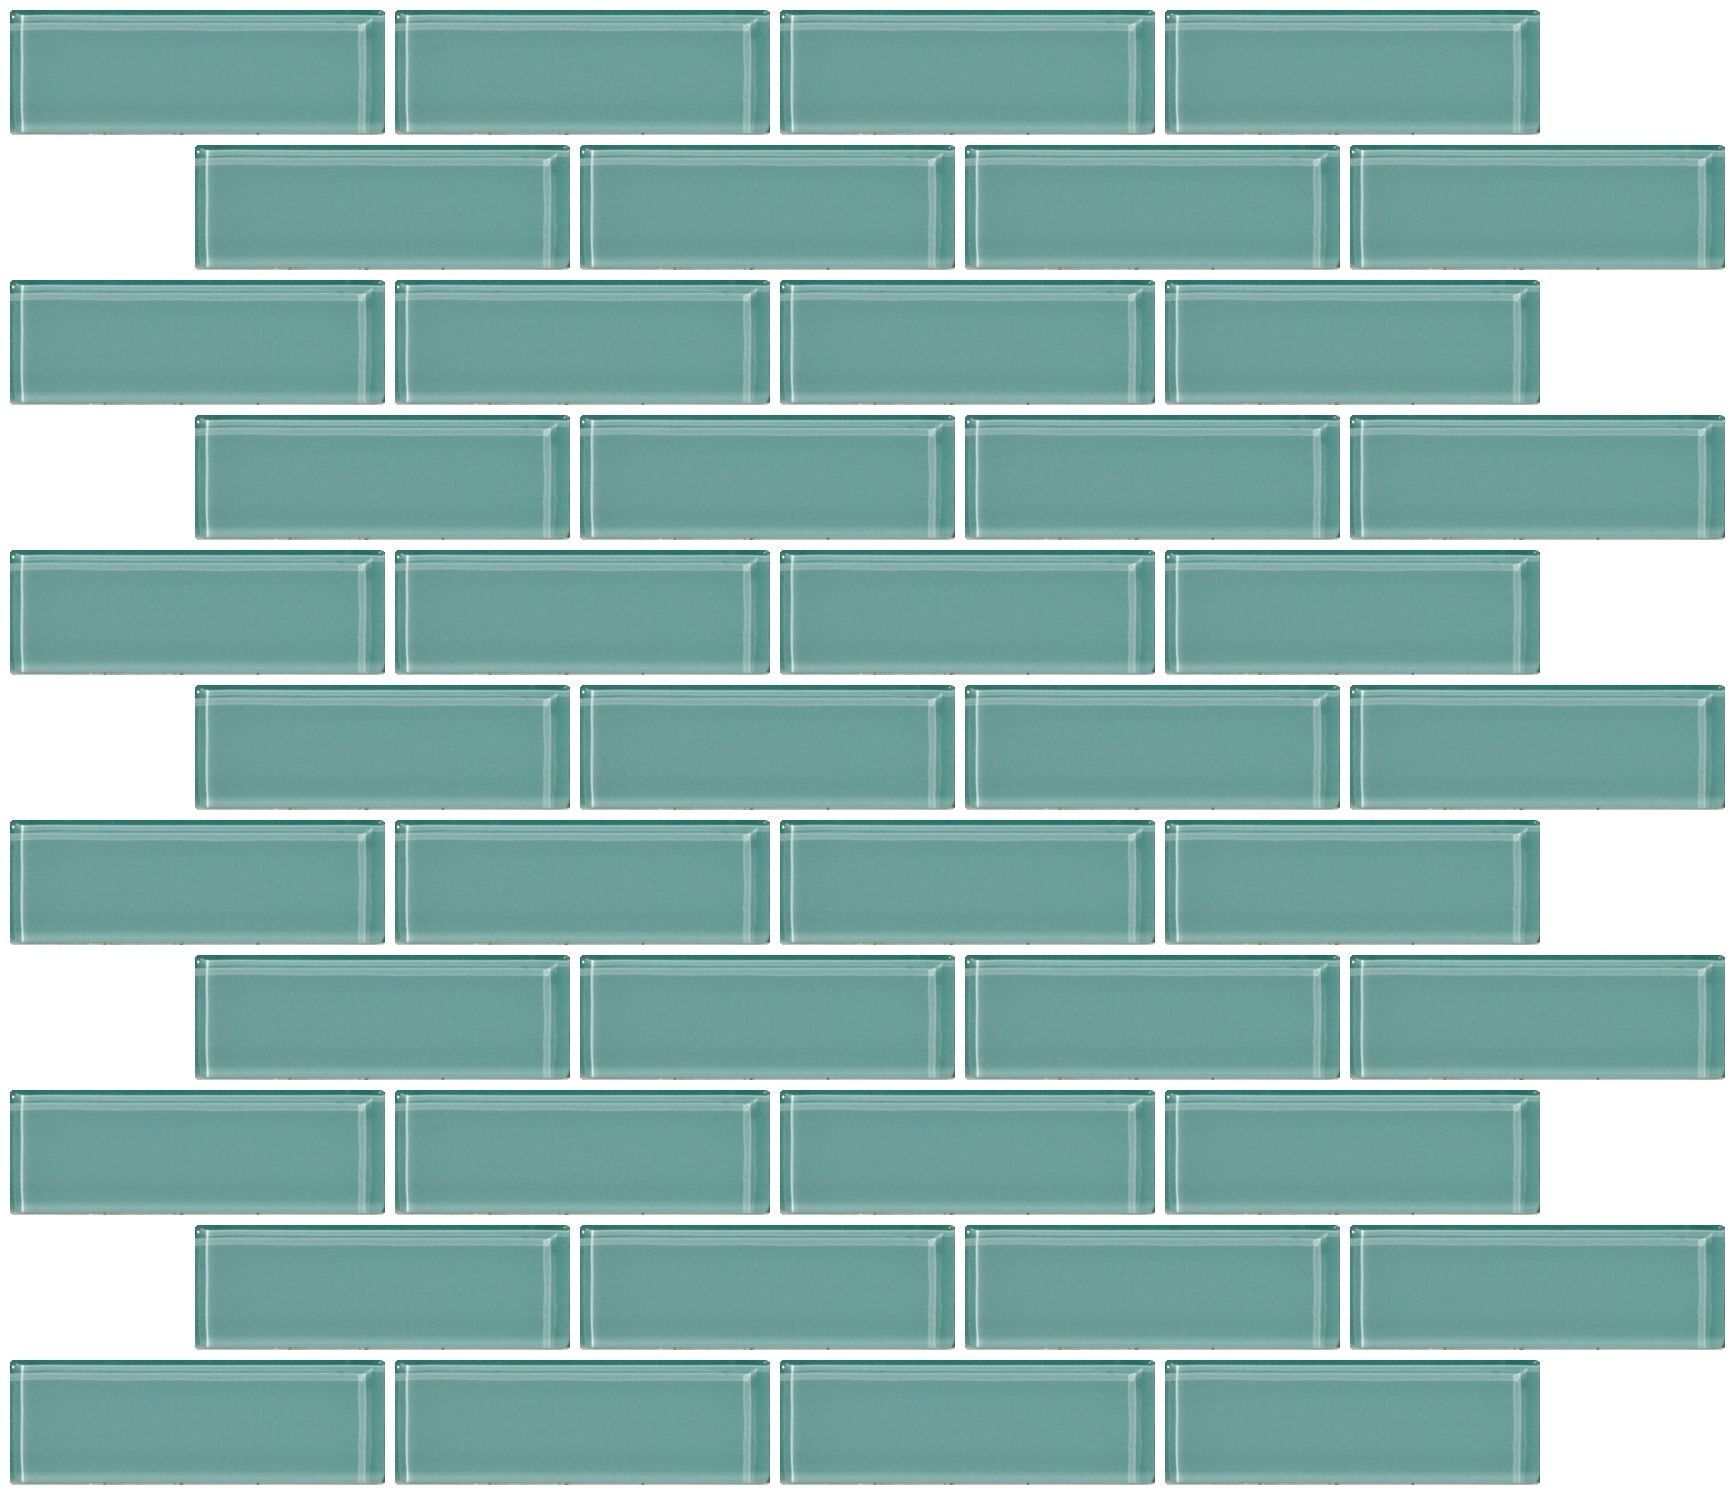 1x3 Inch Light Aqua Blue Glass Subway Tile  Backsplash 629.50